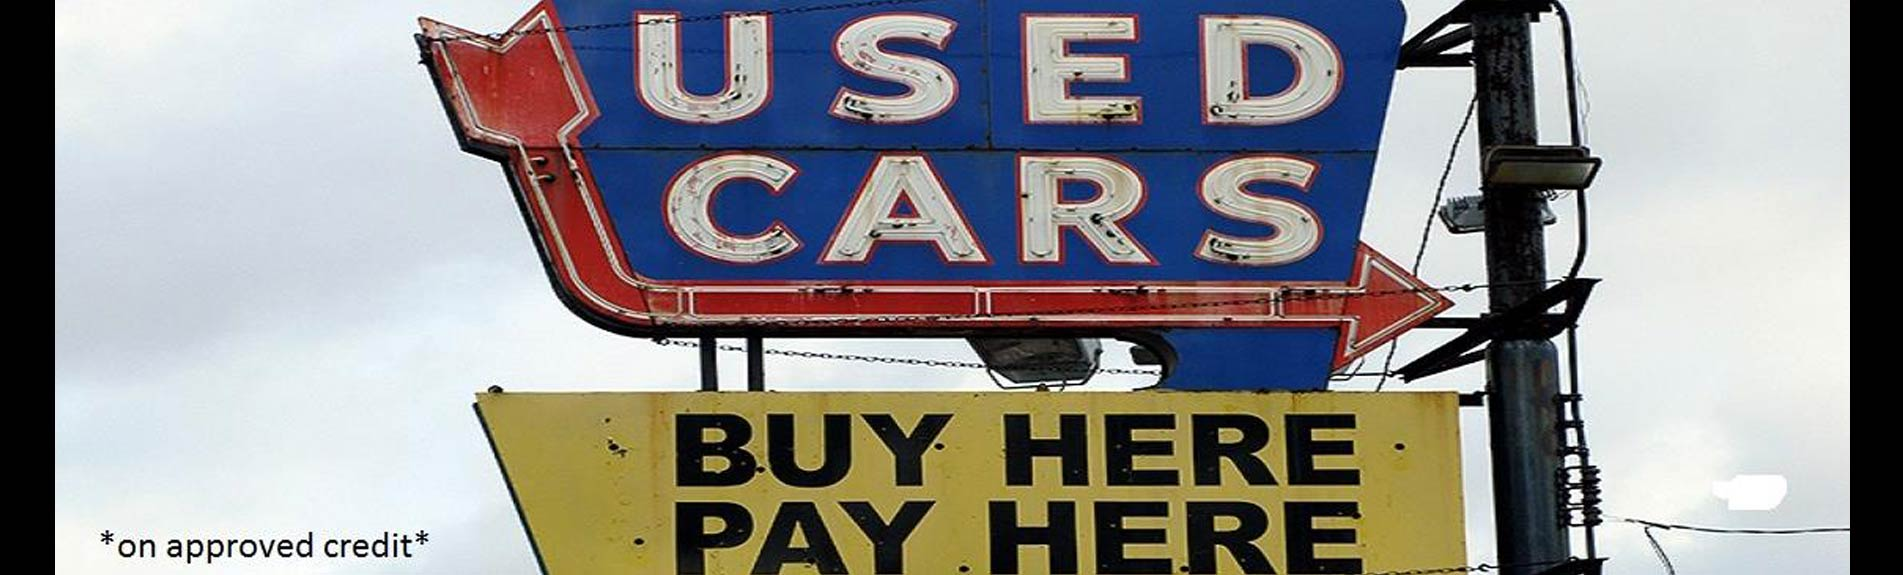 Used Cars Buy Here Pay Here